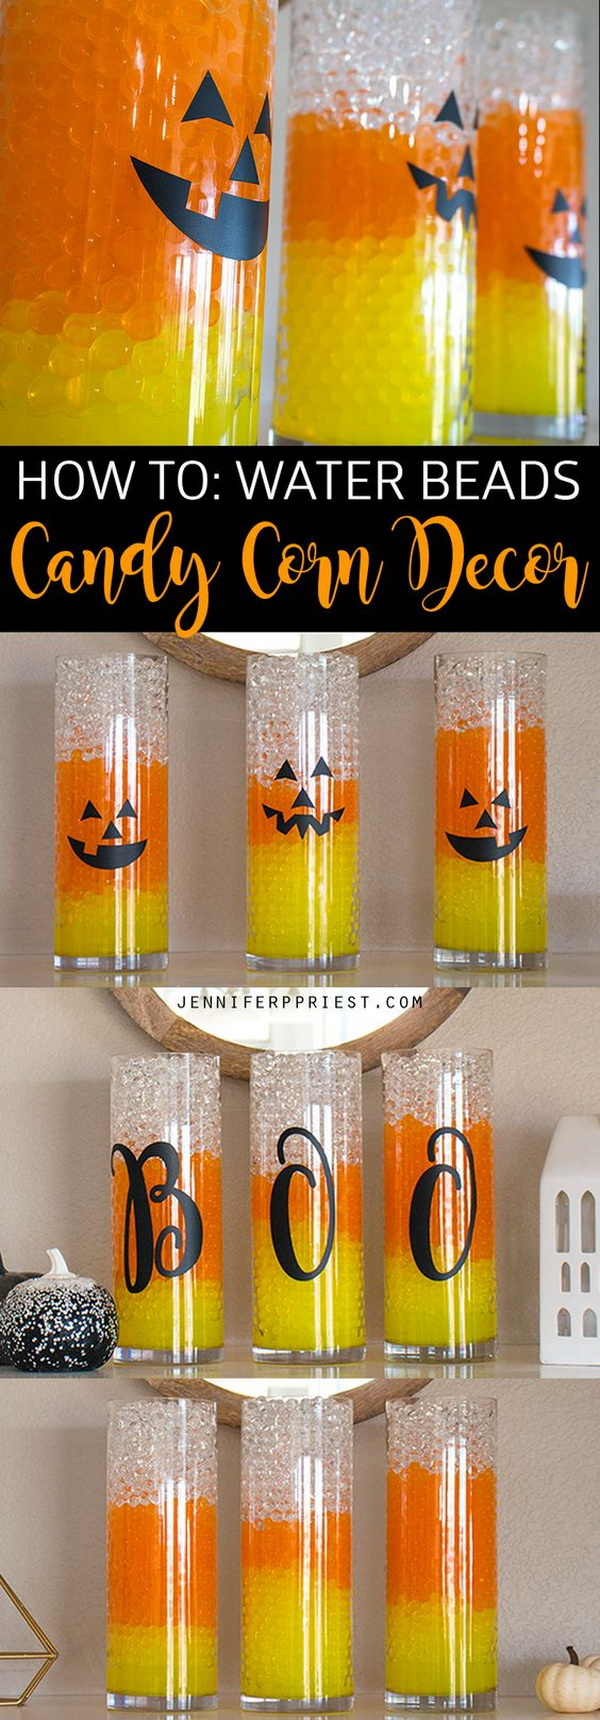 Candy Corn Vase for Halloween. Fill the clear vase with 3 colors of water beads for a unique candy corn vase for Halloween decoration!